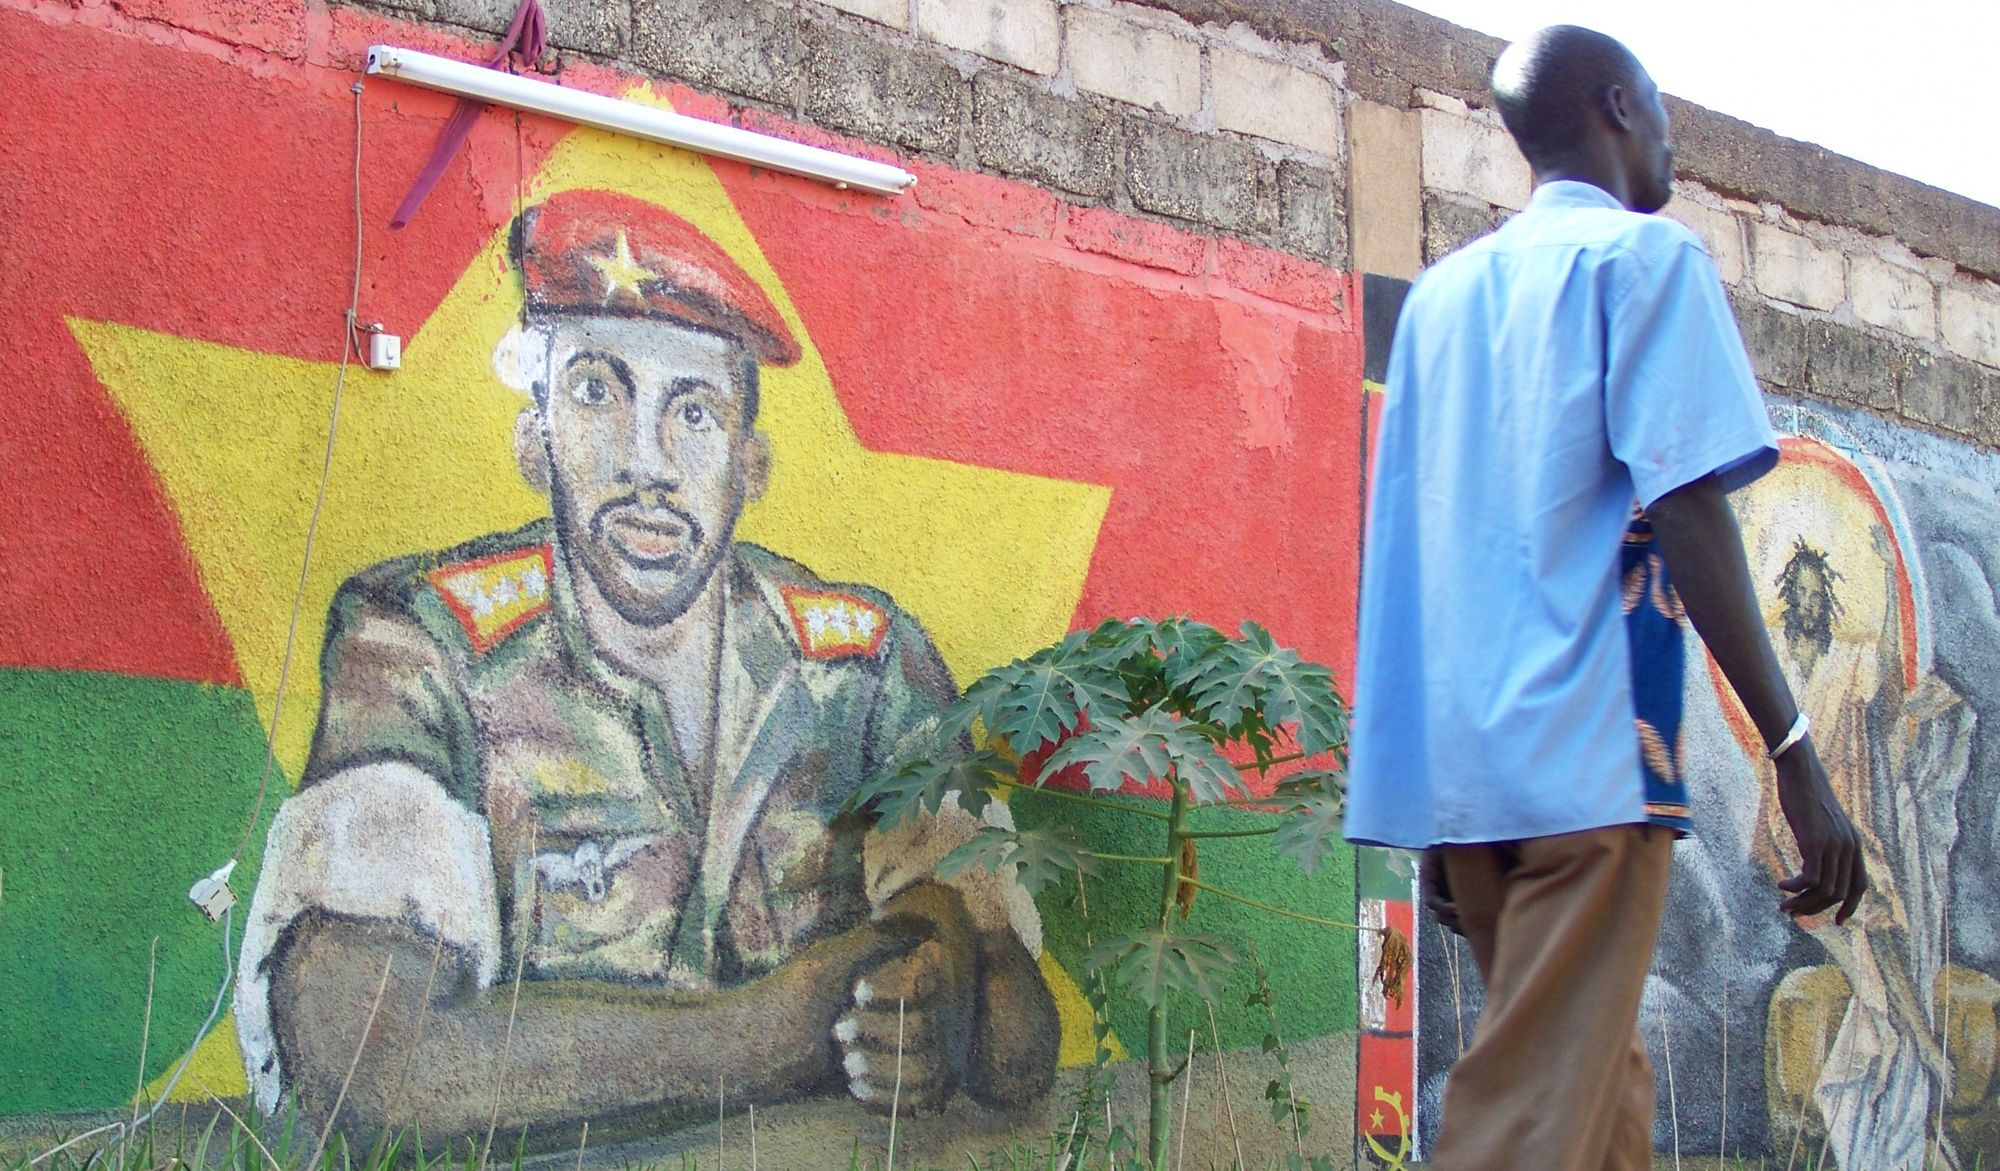 Le charismatique capitaine Sankara a été assassiné en octobre 1987.